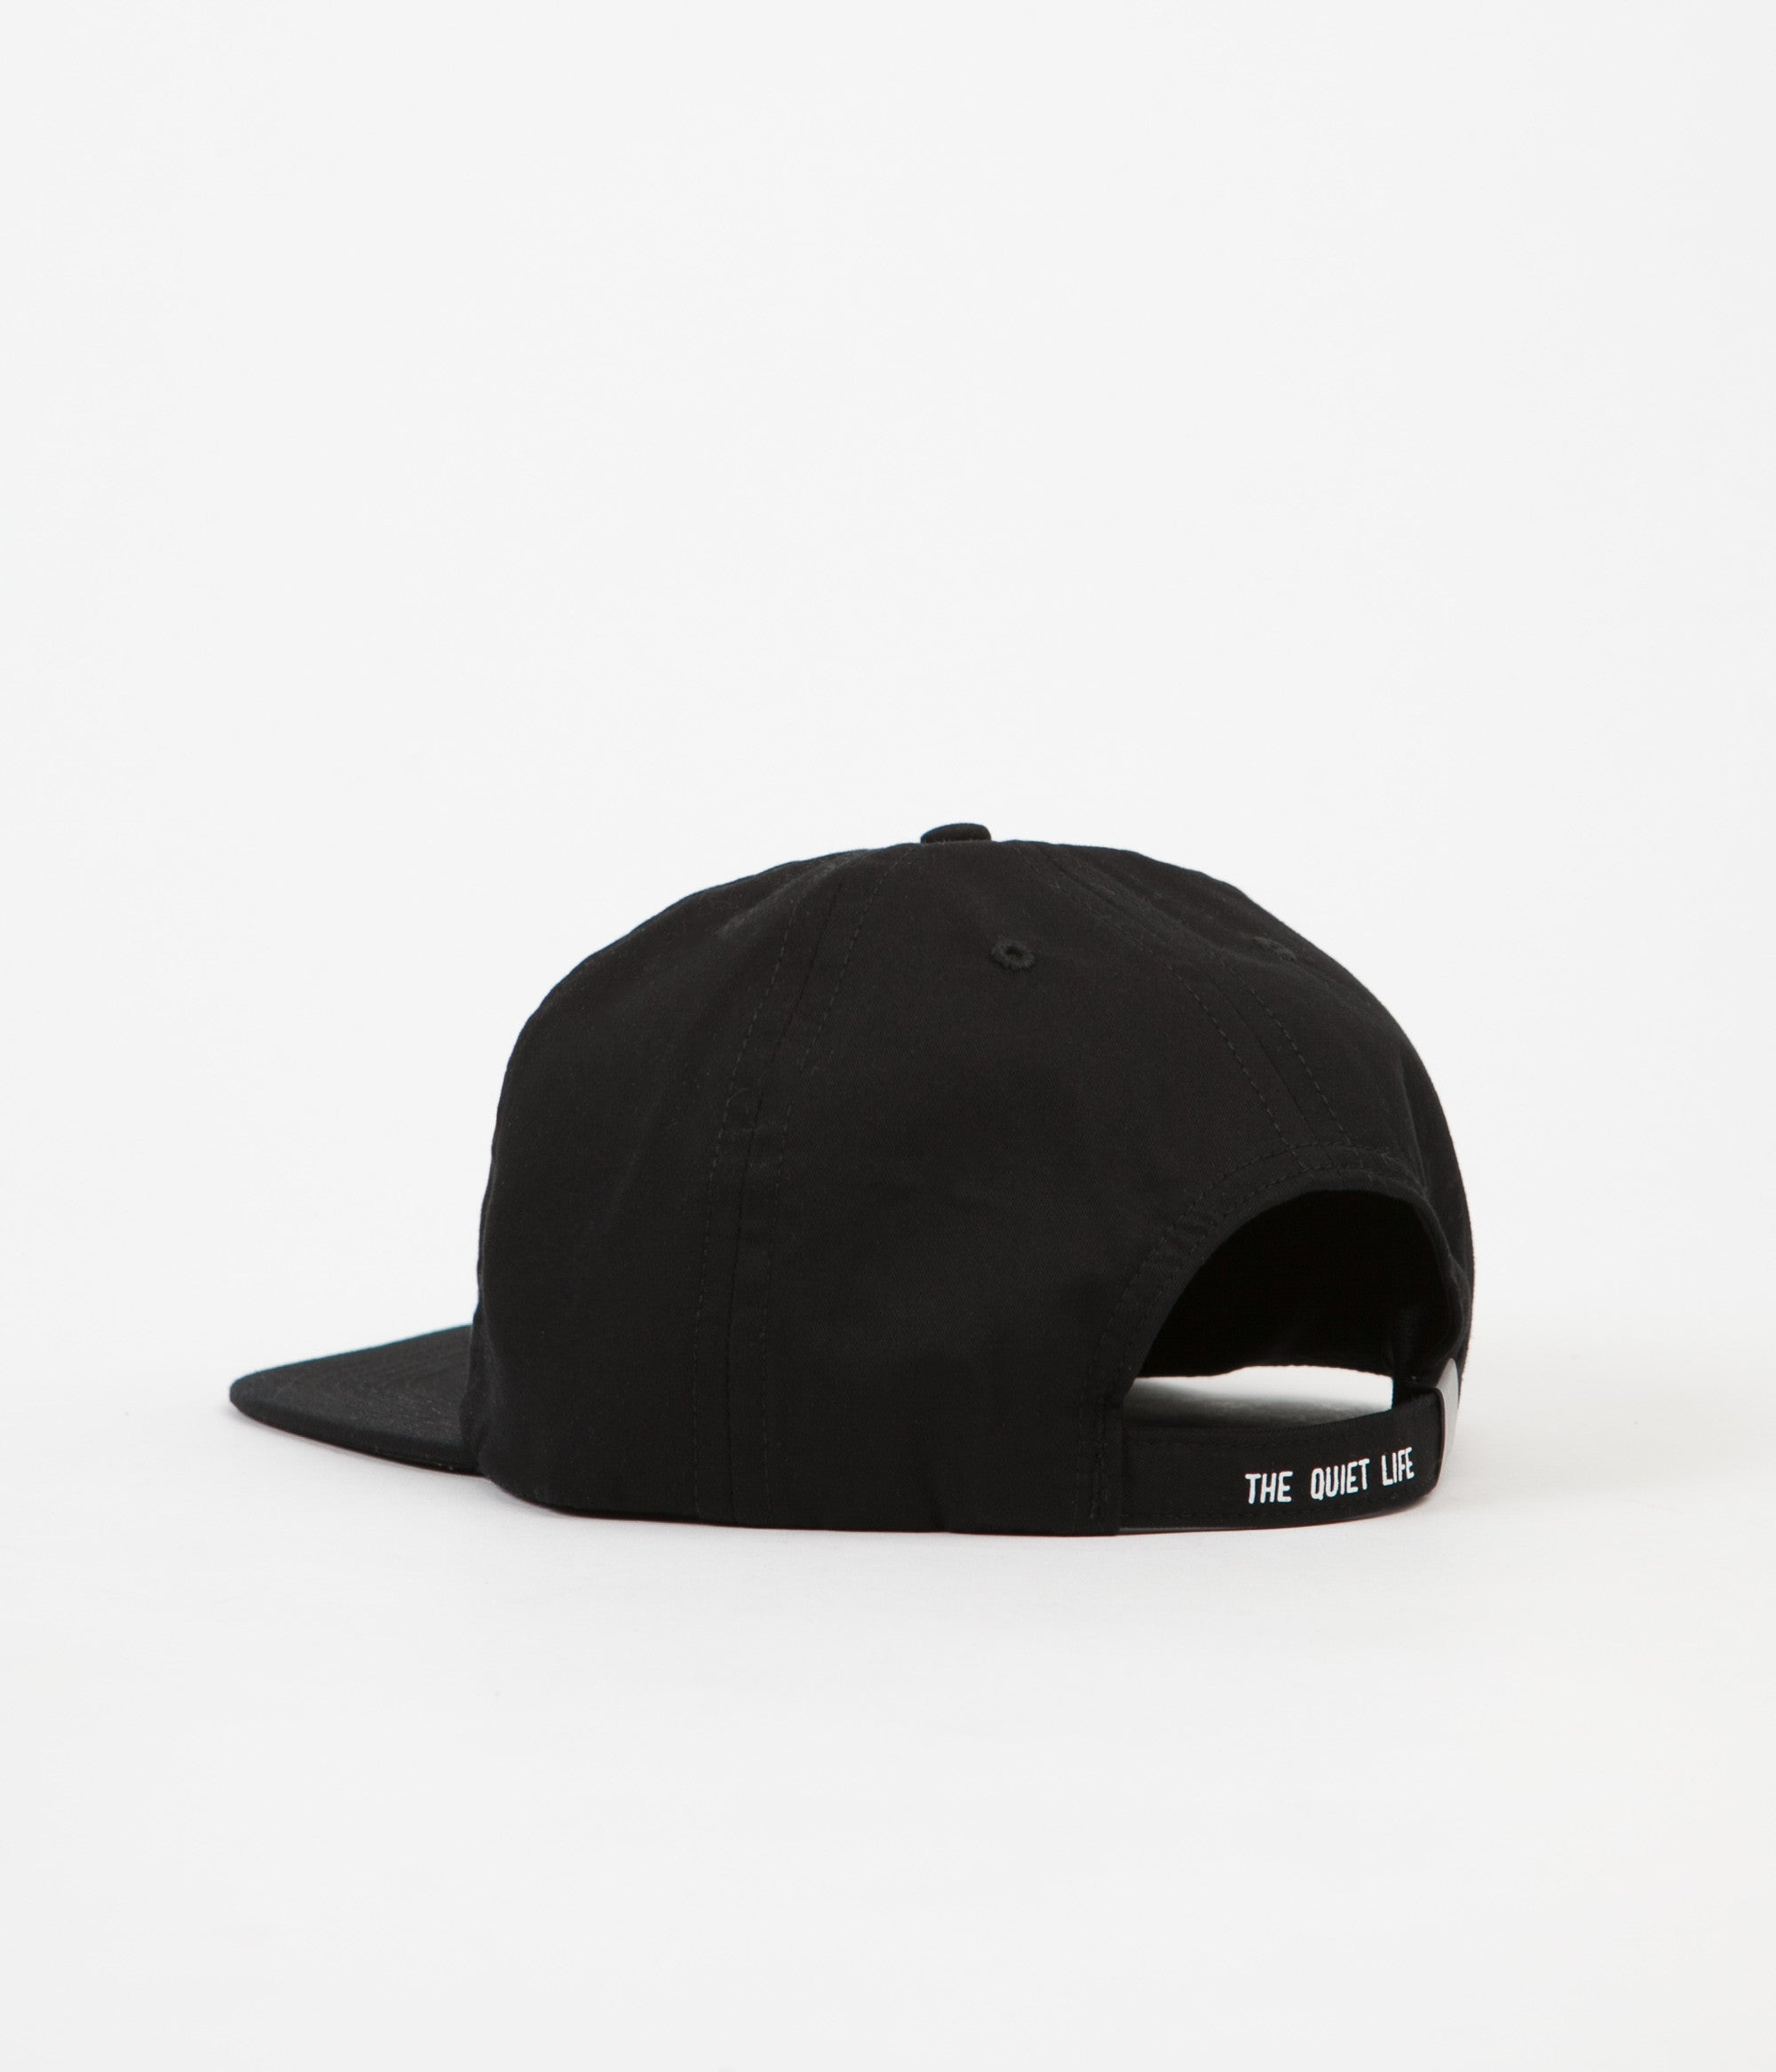 The Quiet Life Otherside Snapback Cap - Black